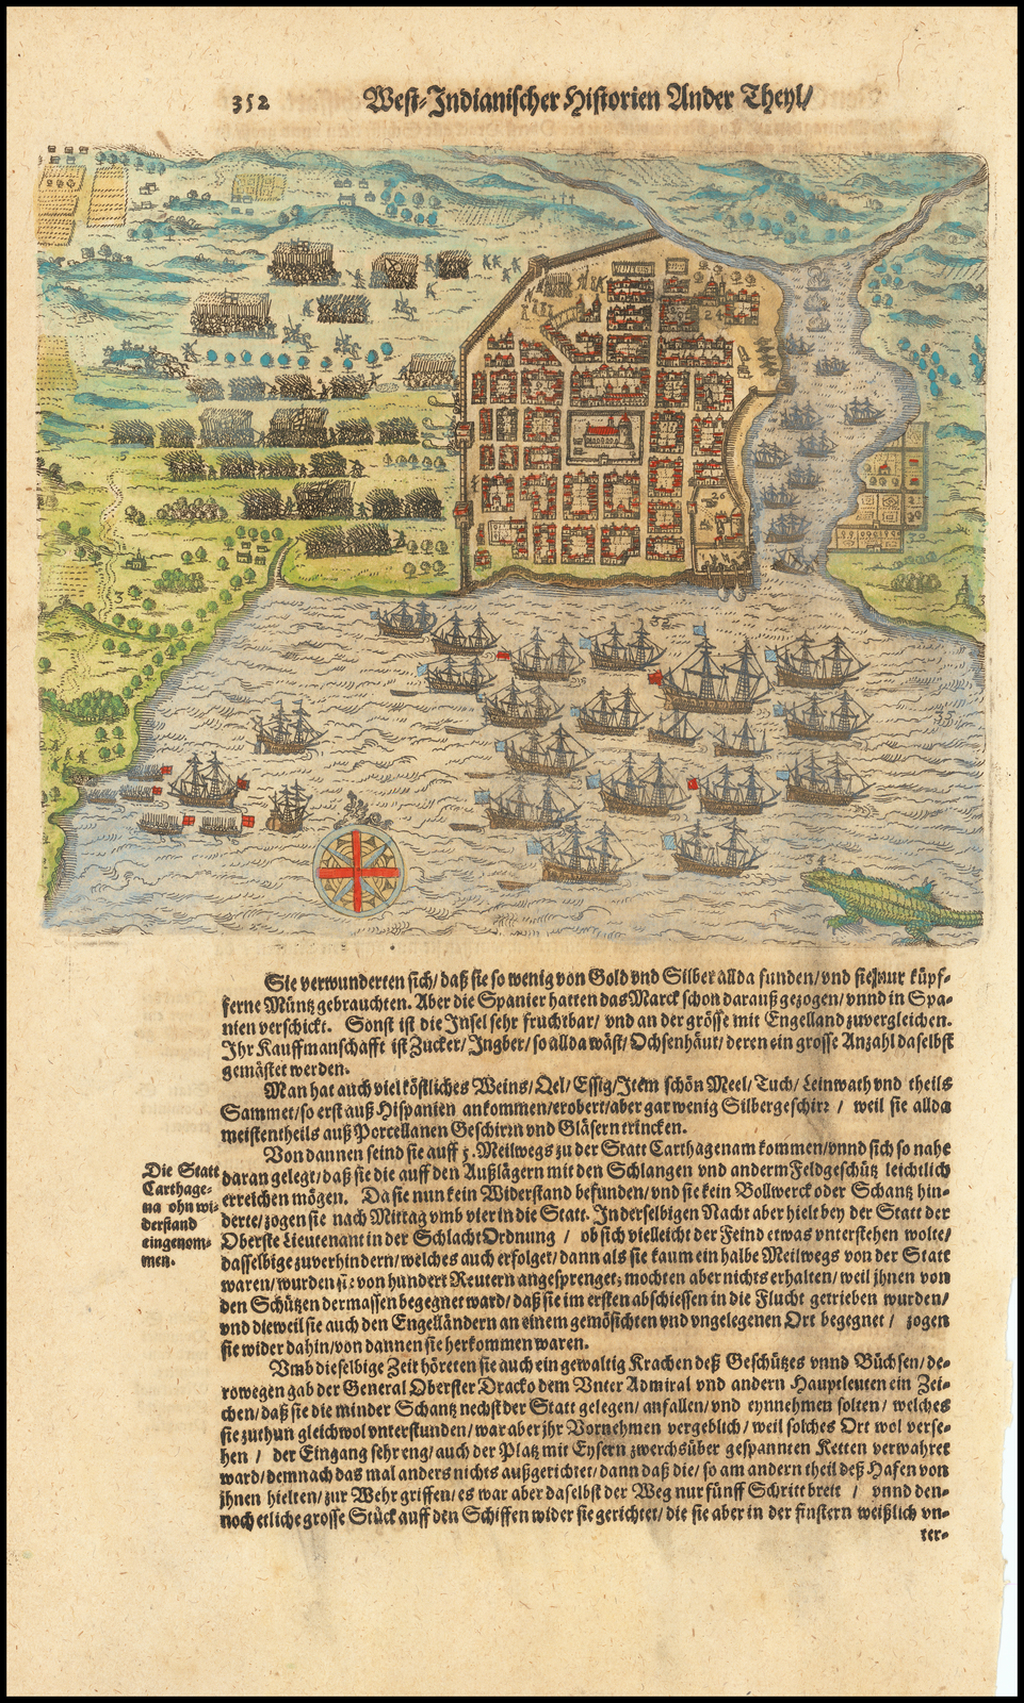 [Drake's Attack on Santo Domingo.] By Theodor De Bry / Matthaeus Merian